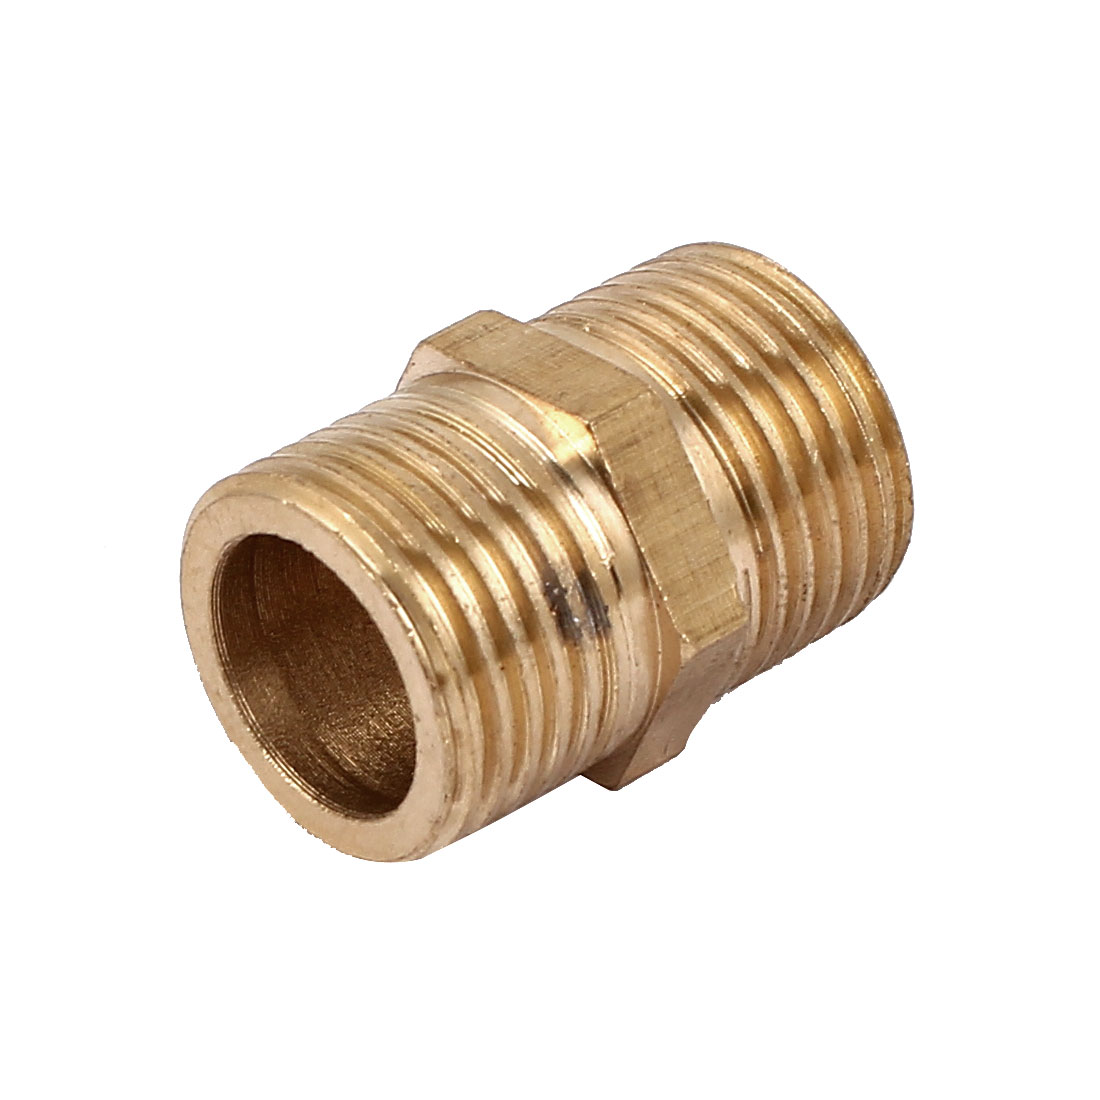 Air Fuel Water Pipe 1/2BSP Male Thread Brass Hex Nipple Fitting 30mm Long